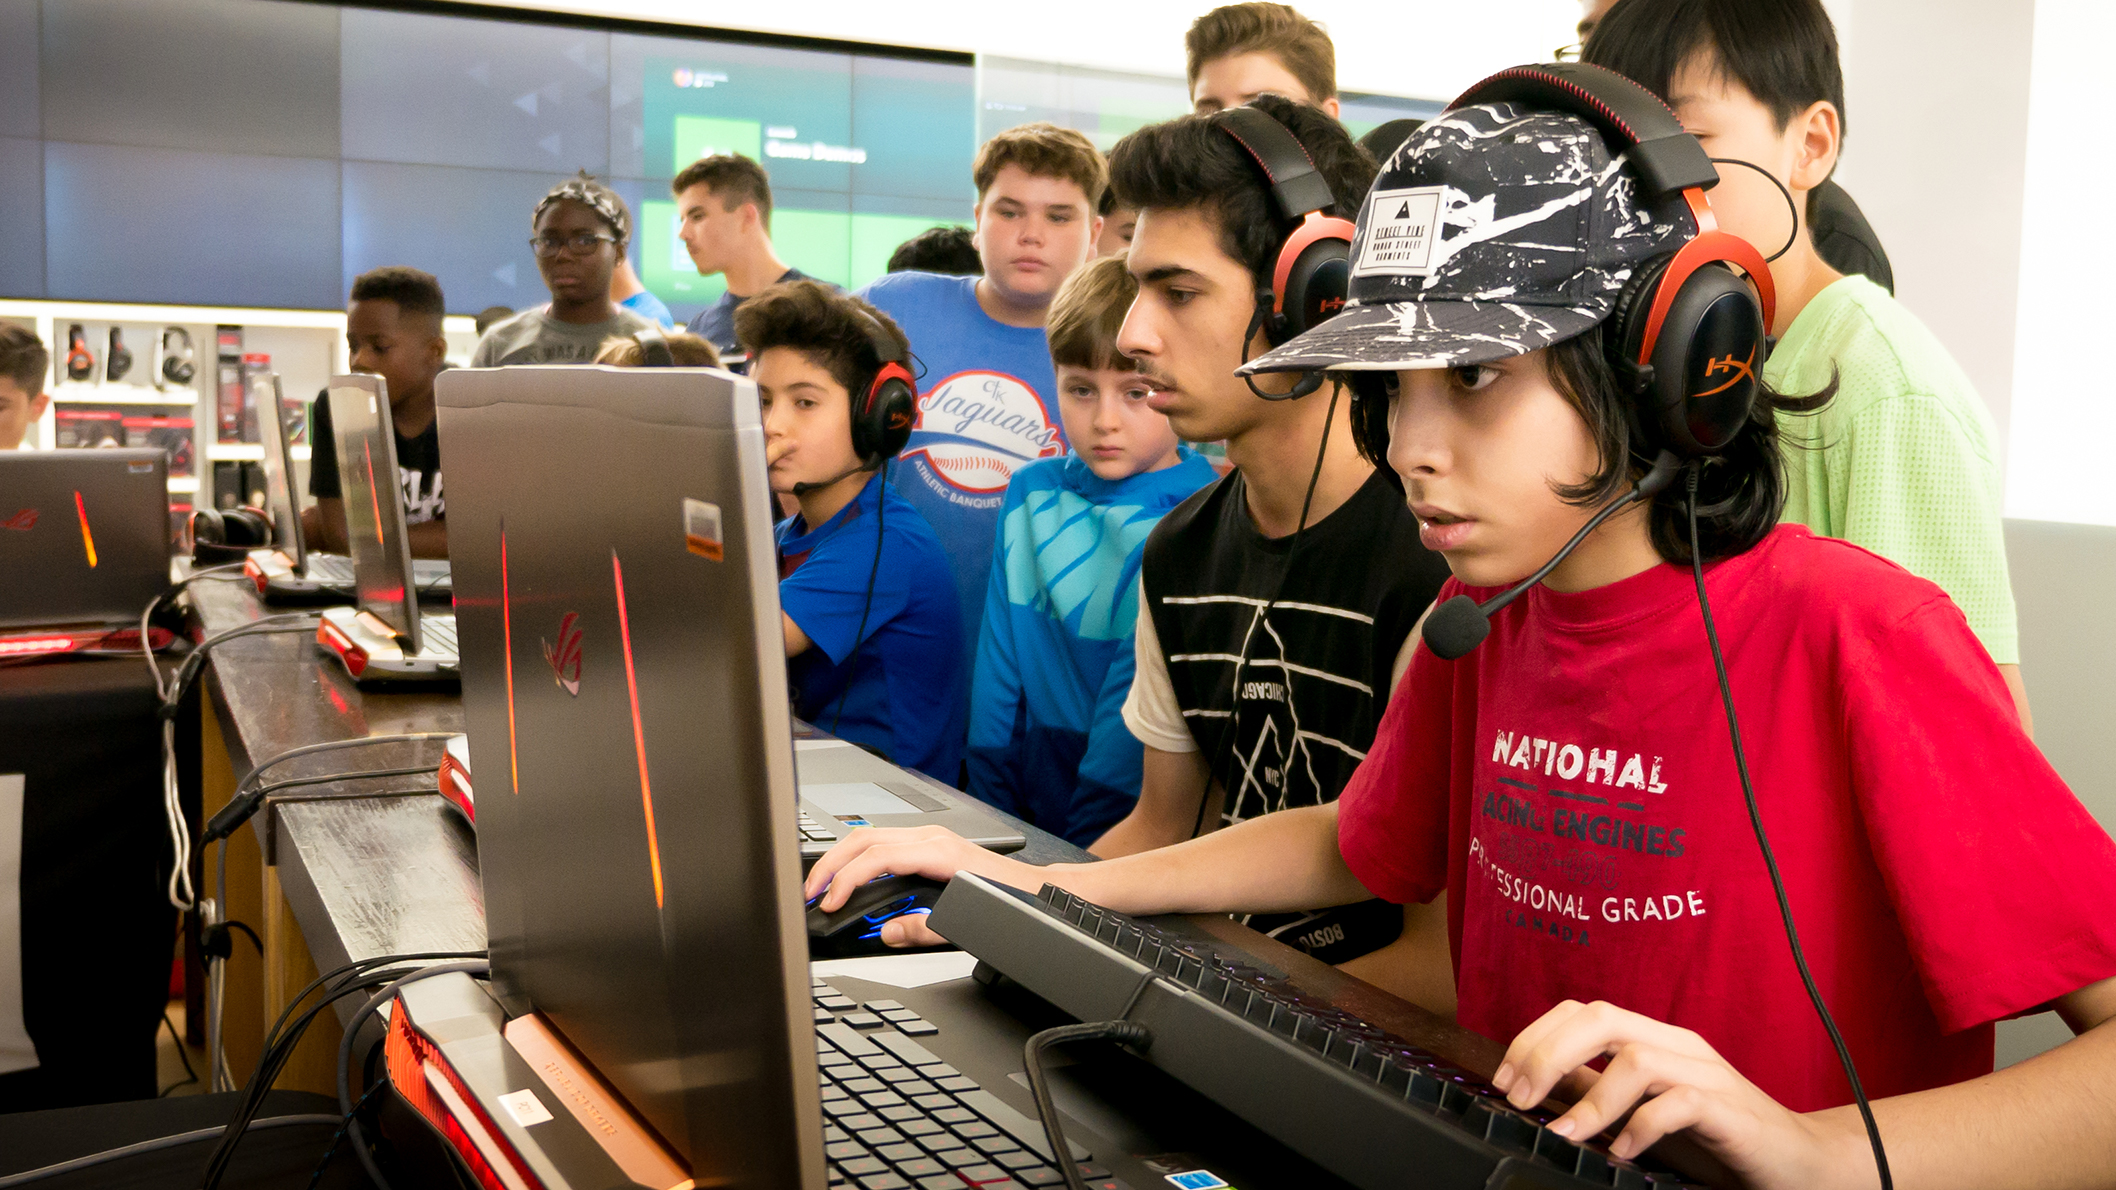 Group of boys gaming together at a Microsoft store location.